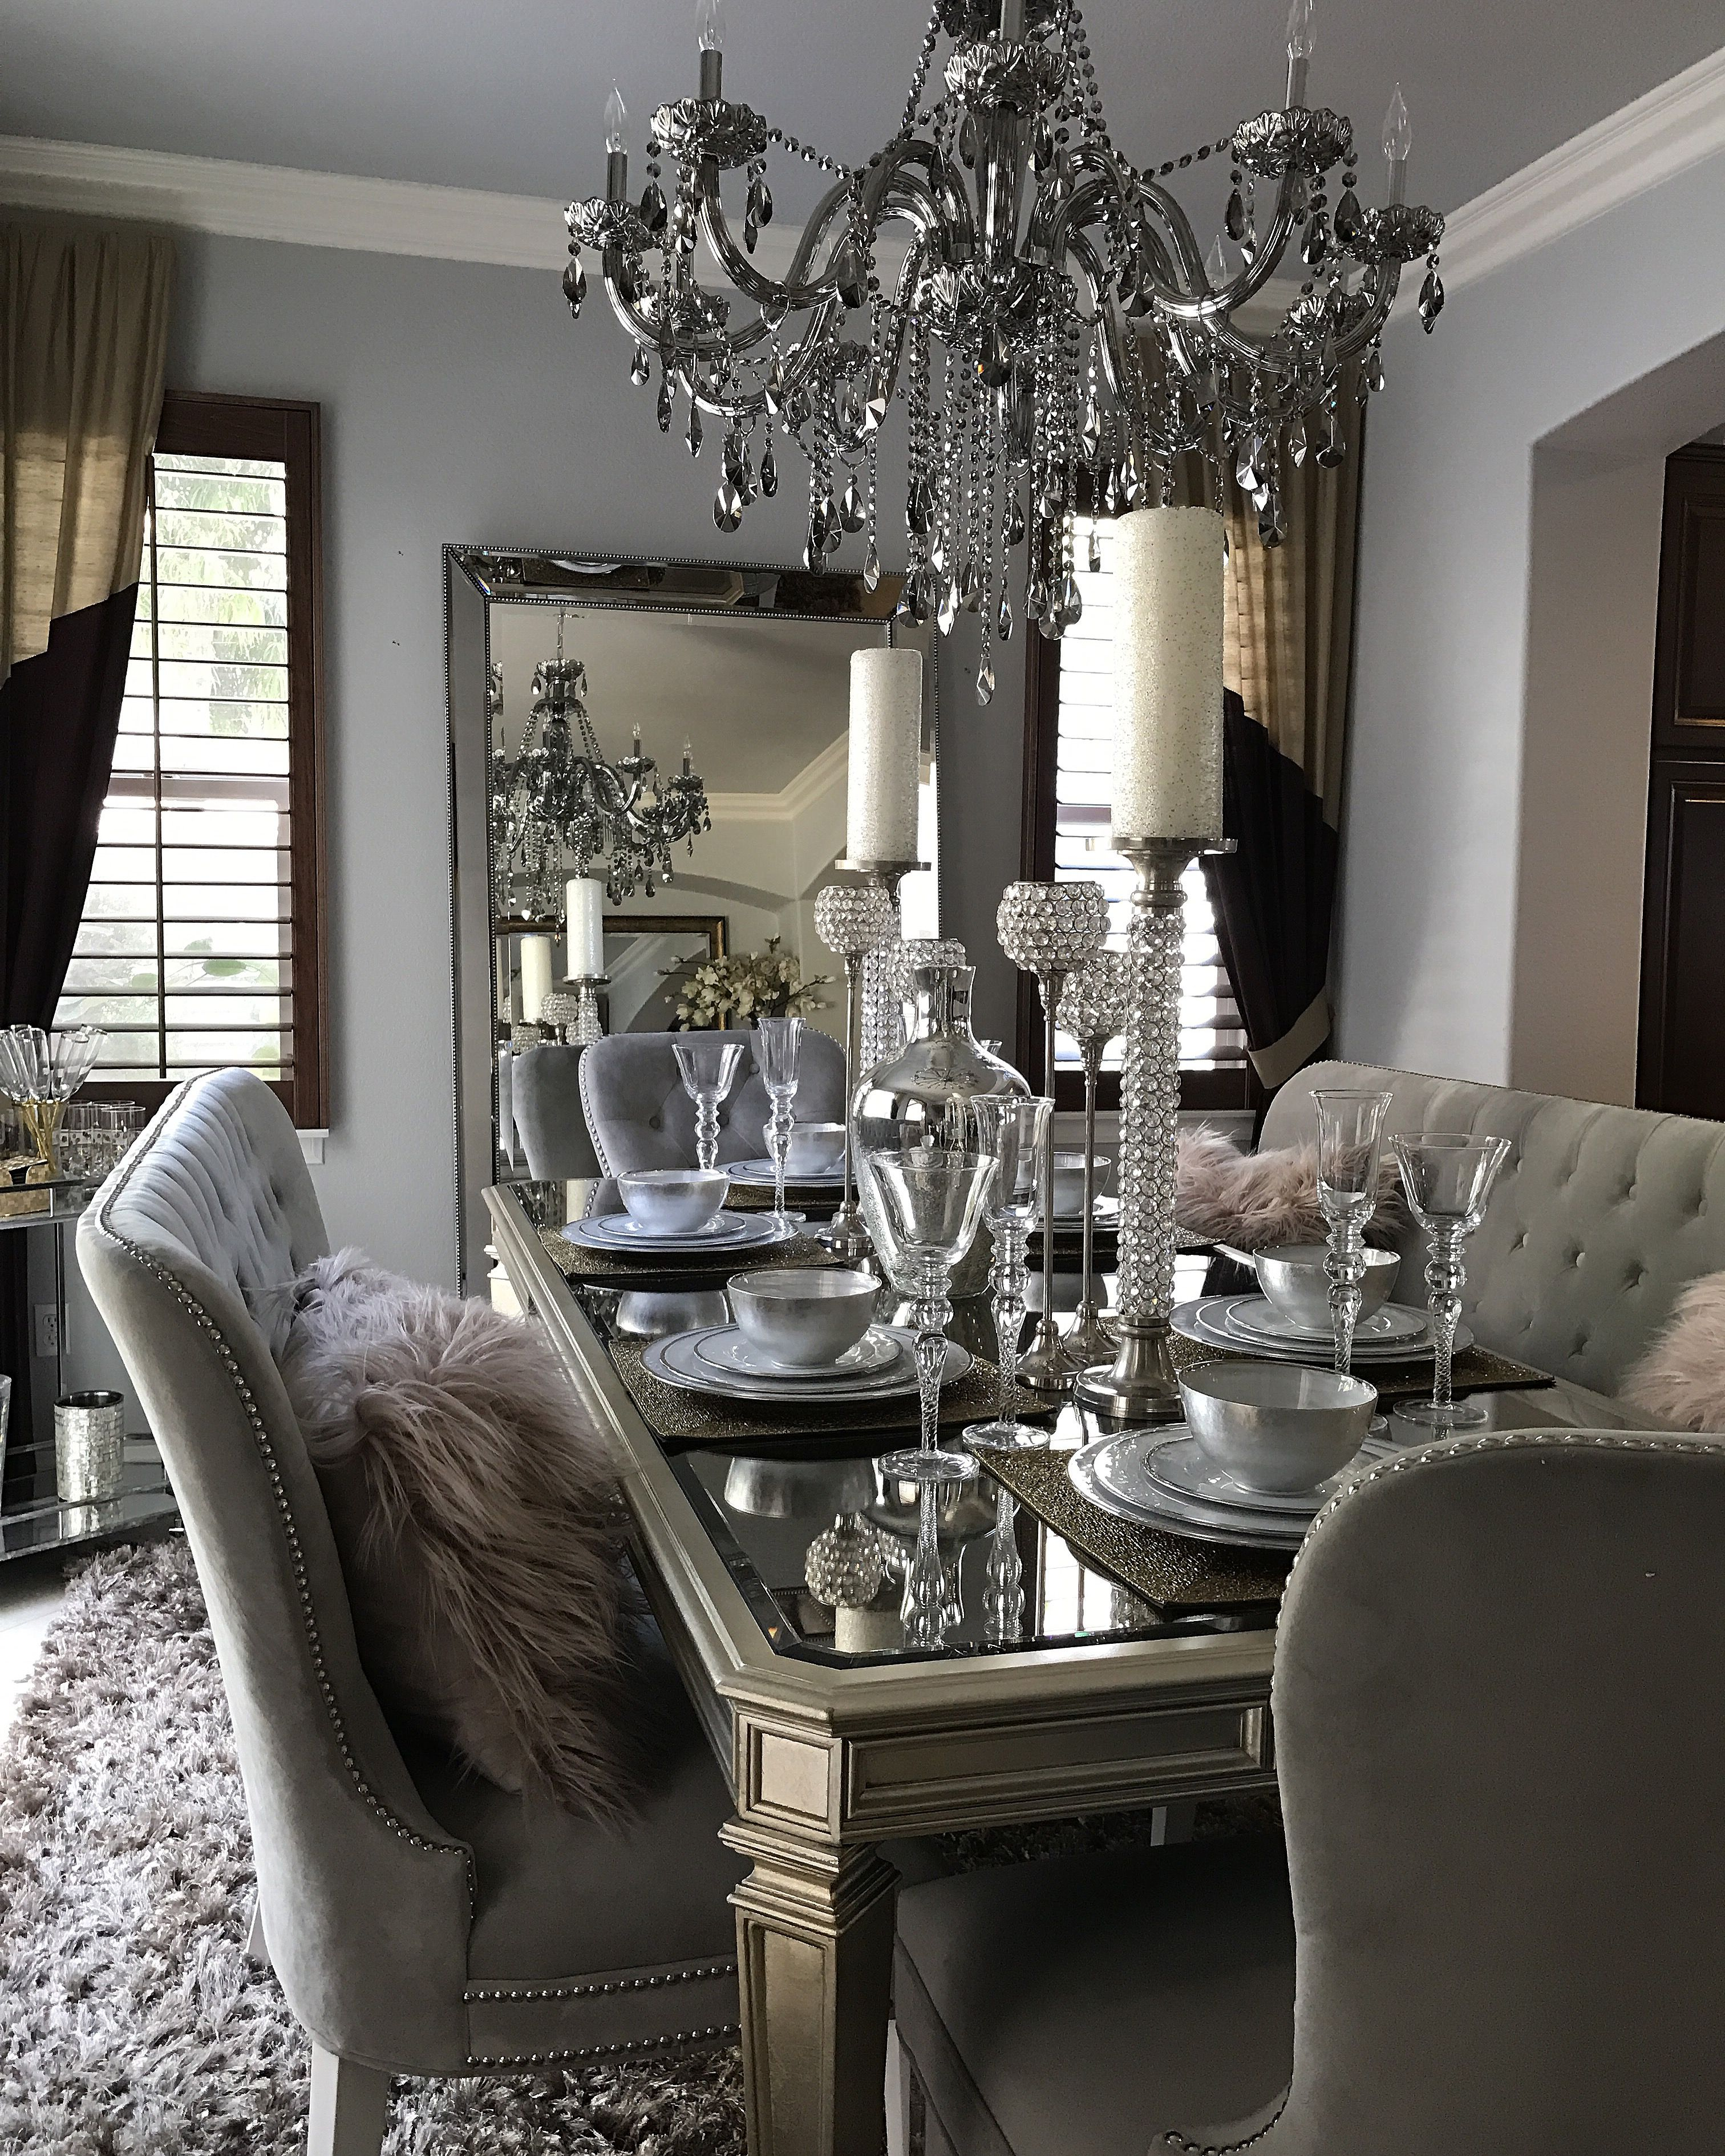 Rh Interior Designs Zgallerie Empire Dinning Table Charlotte Banquette S Side Chair Acrylic Omni Mirror Chandelier And Blush Pillows